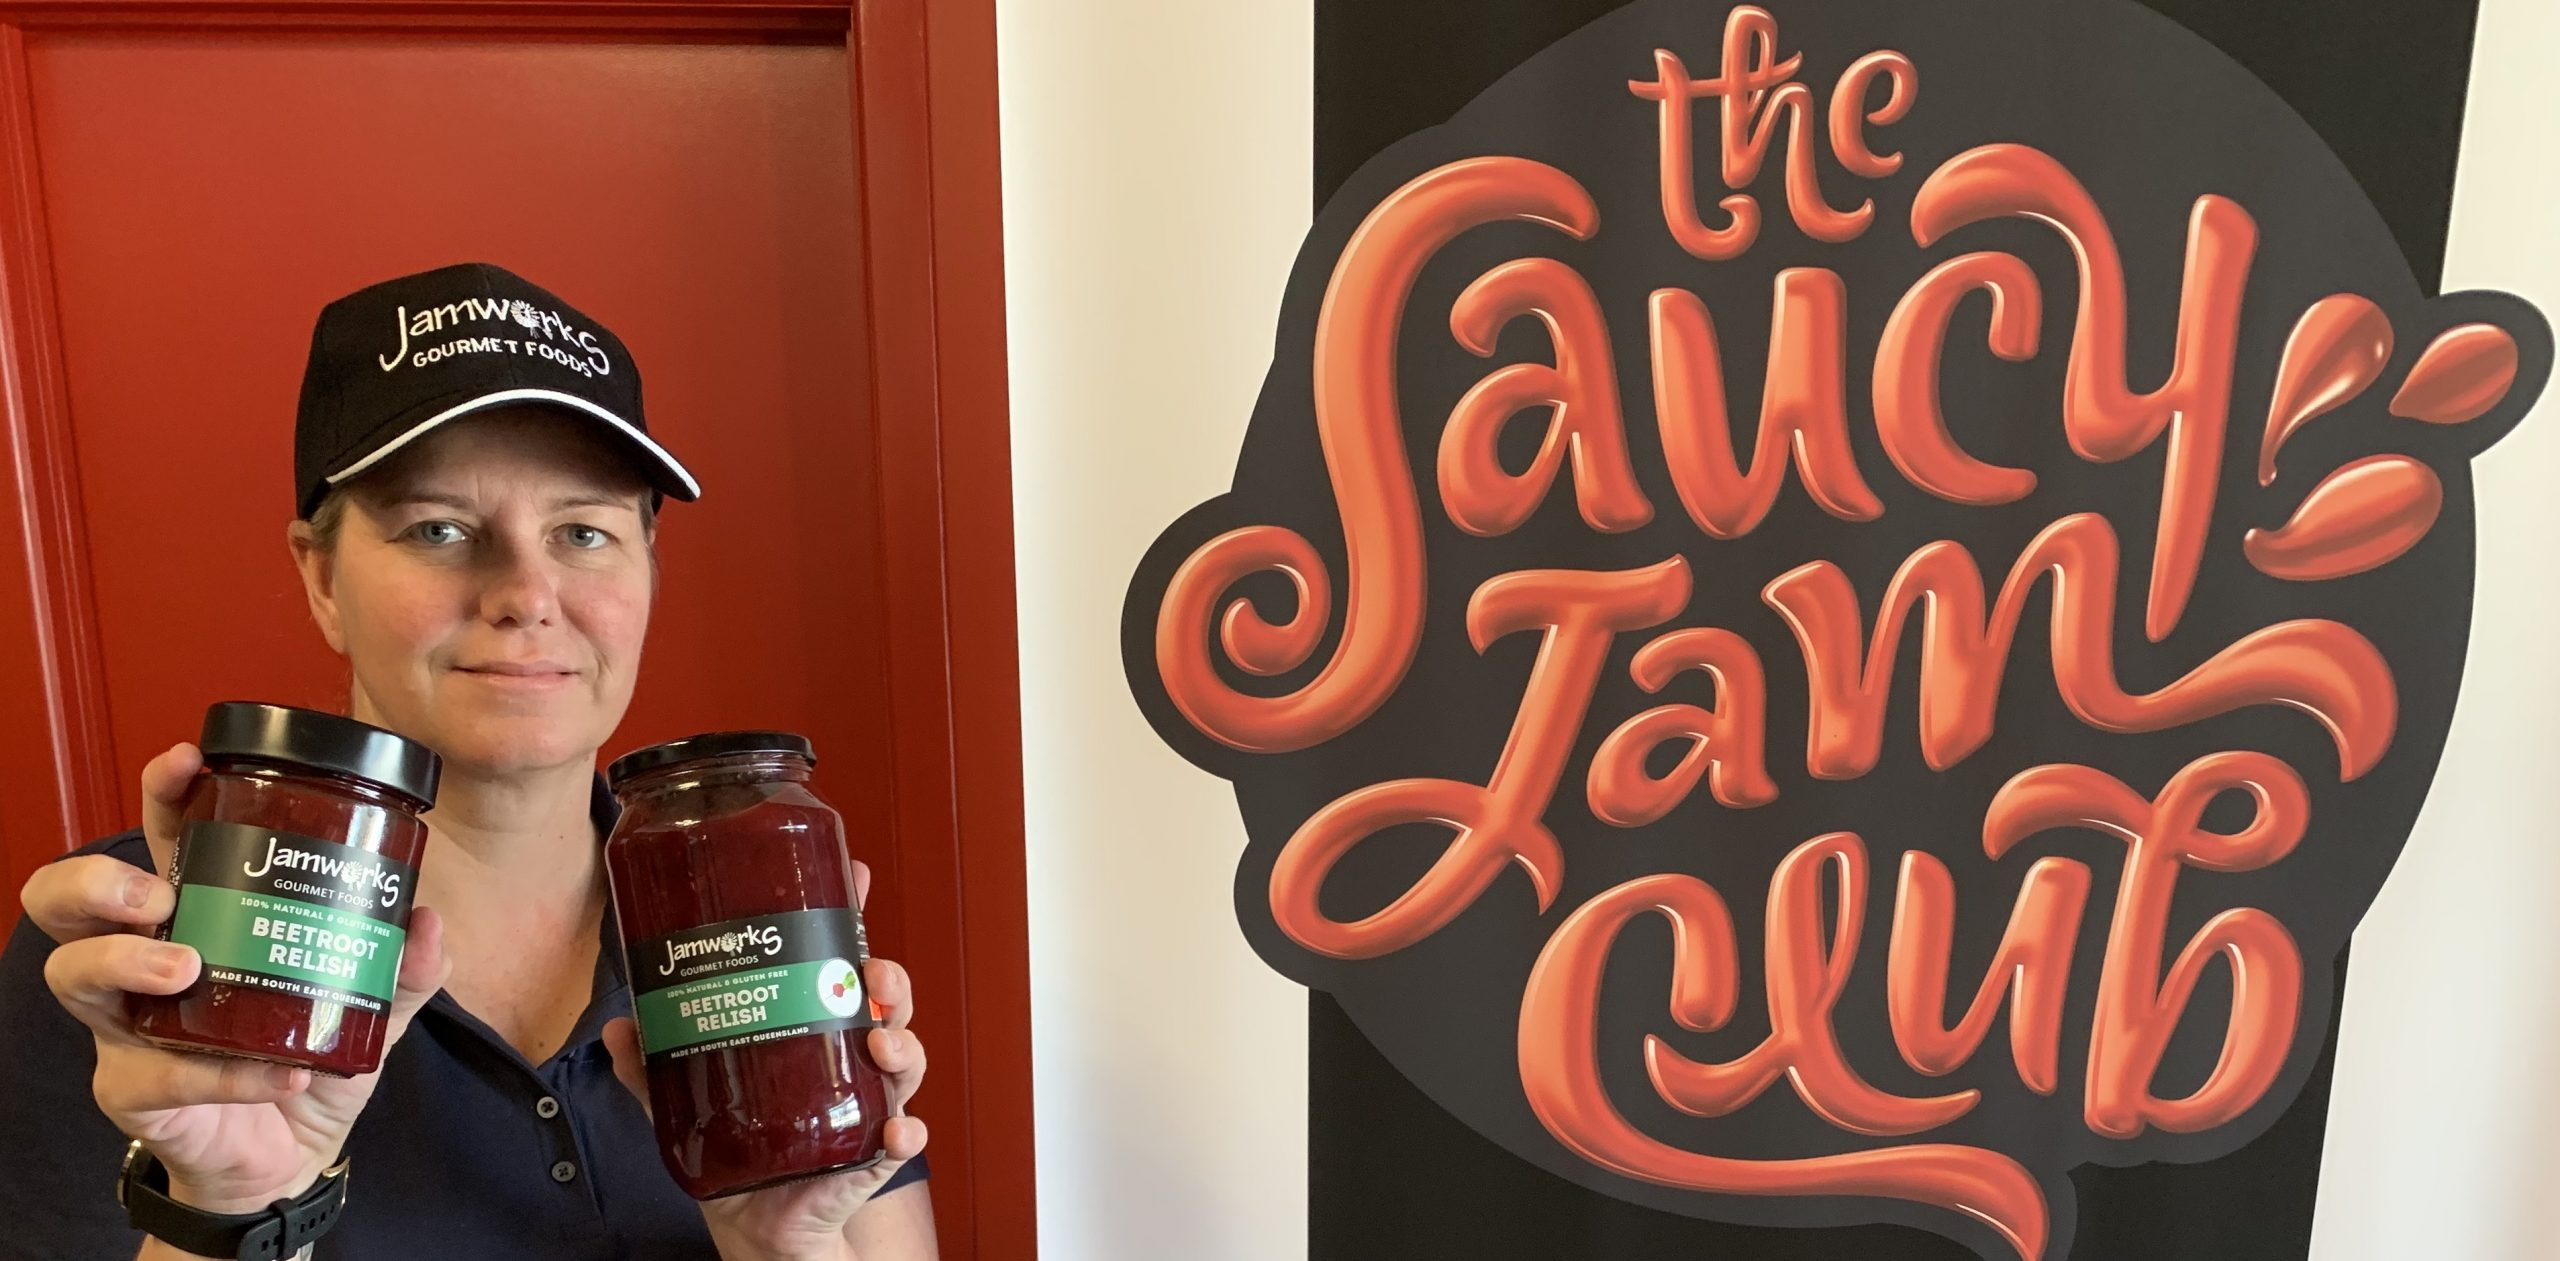 Jamworks: Jams, Relishes, Sauces